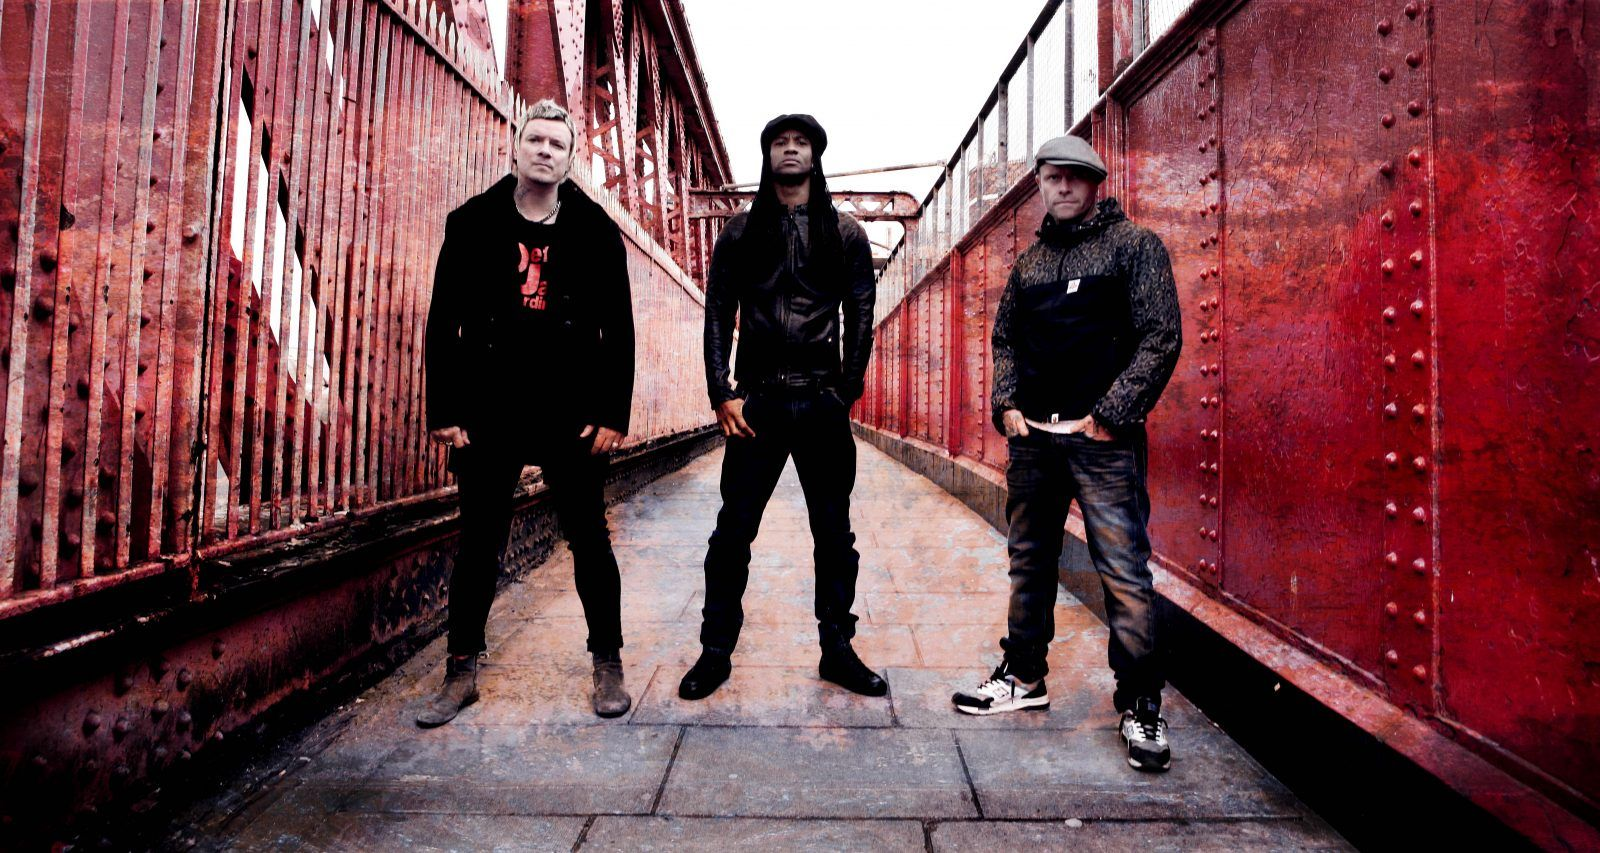 theprodigy-bridge-2015-press-photo-1a.jpg